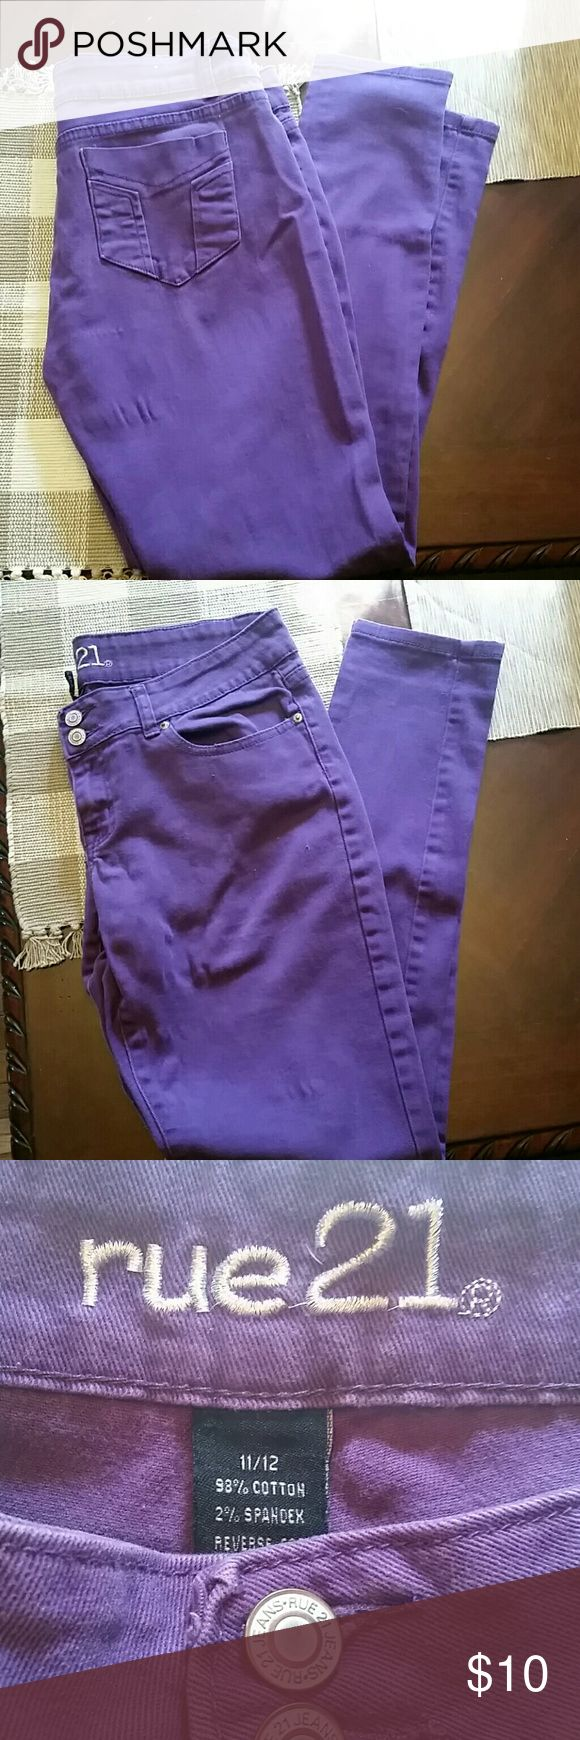 Purple Skinny jeans EUC Size 11/12 Purple Skinny jeans from Rue21 98% cotton and 2% Spandex  #HotTopic #punk #goth #Tripp Rue21 Jeans Skinny